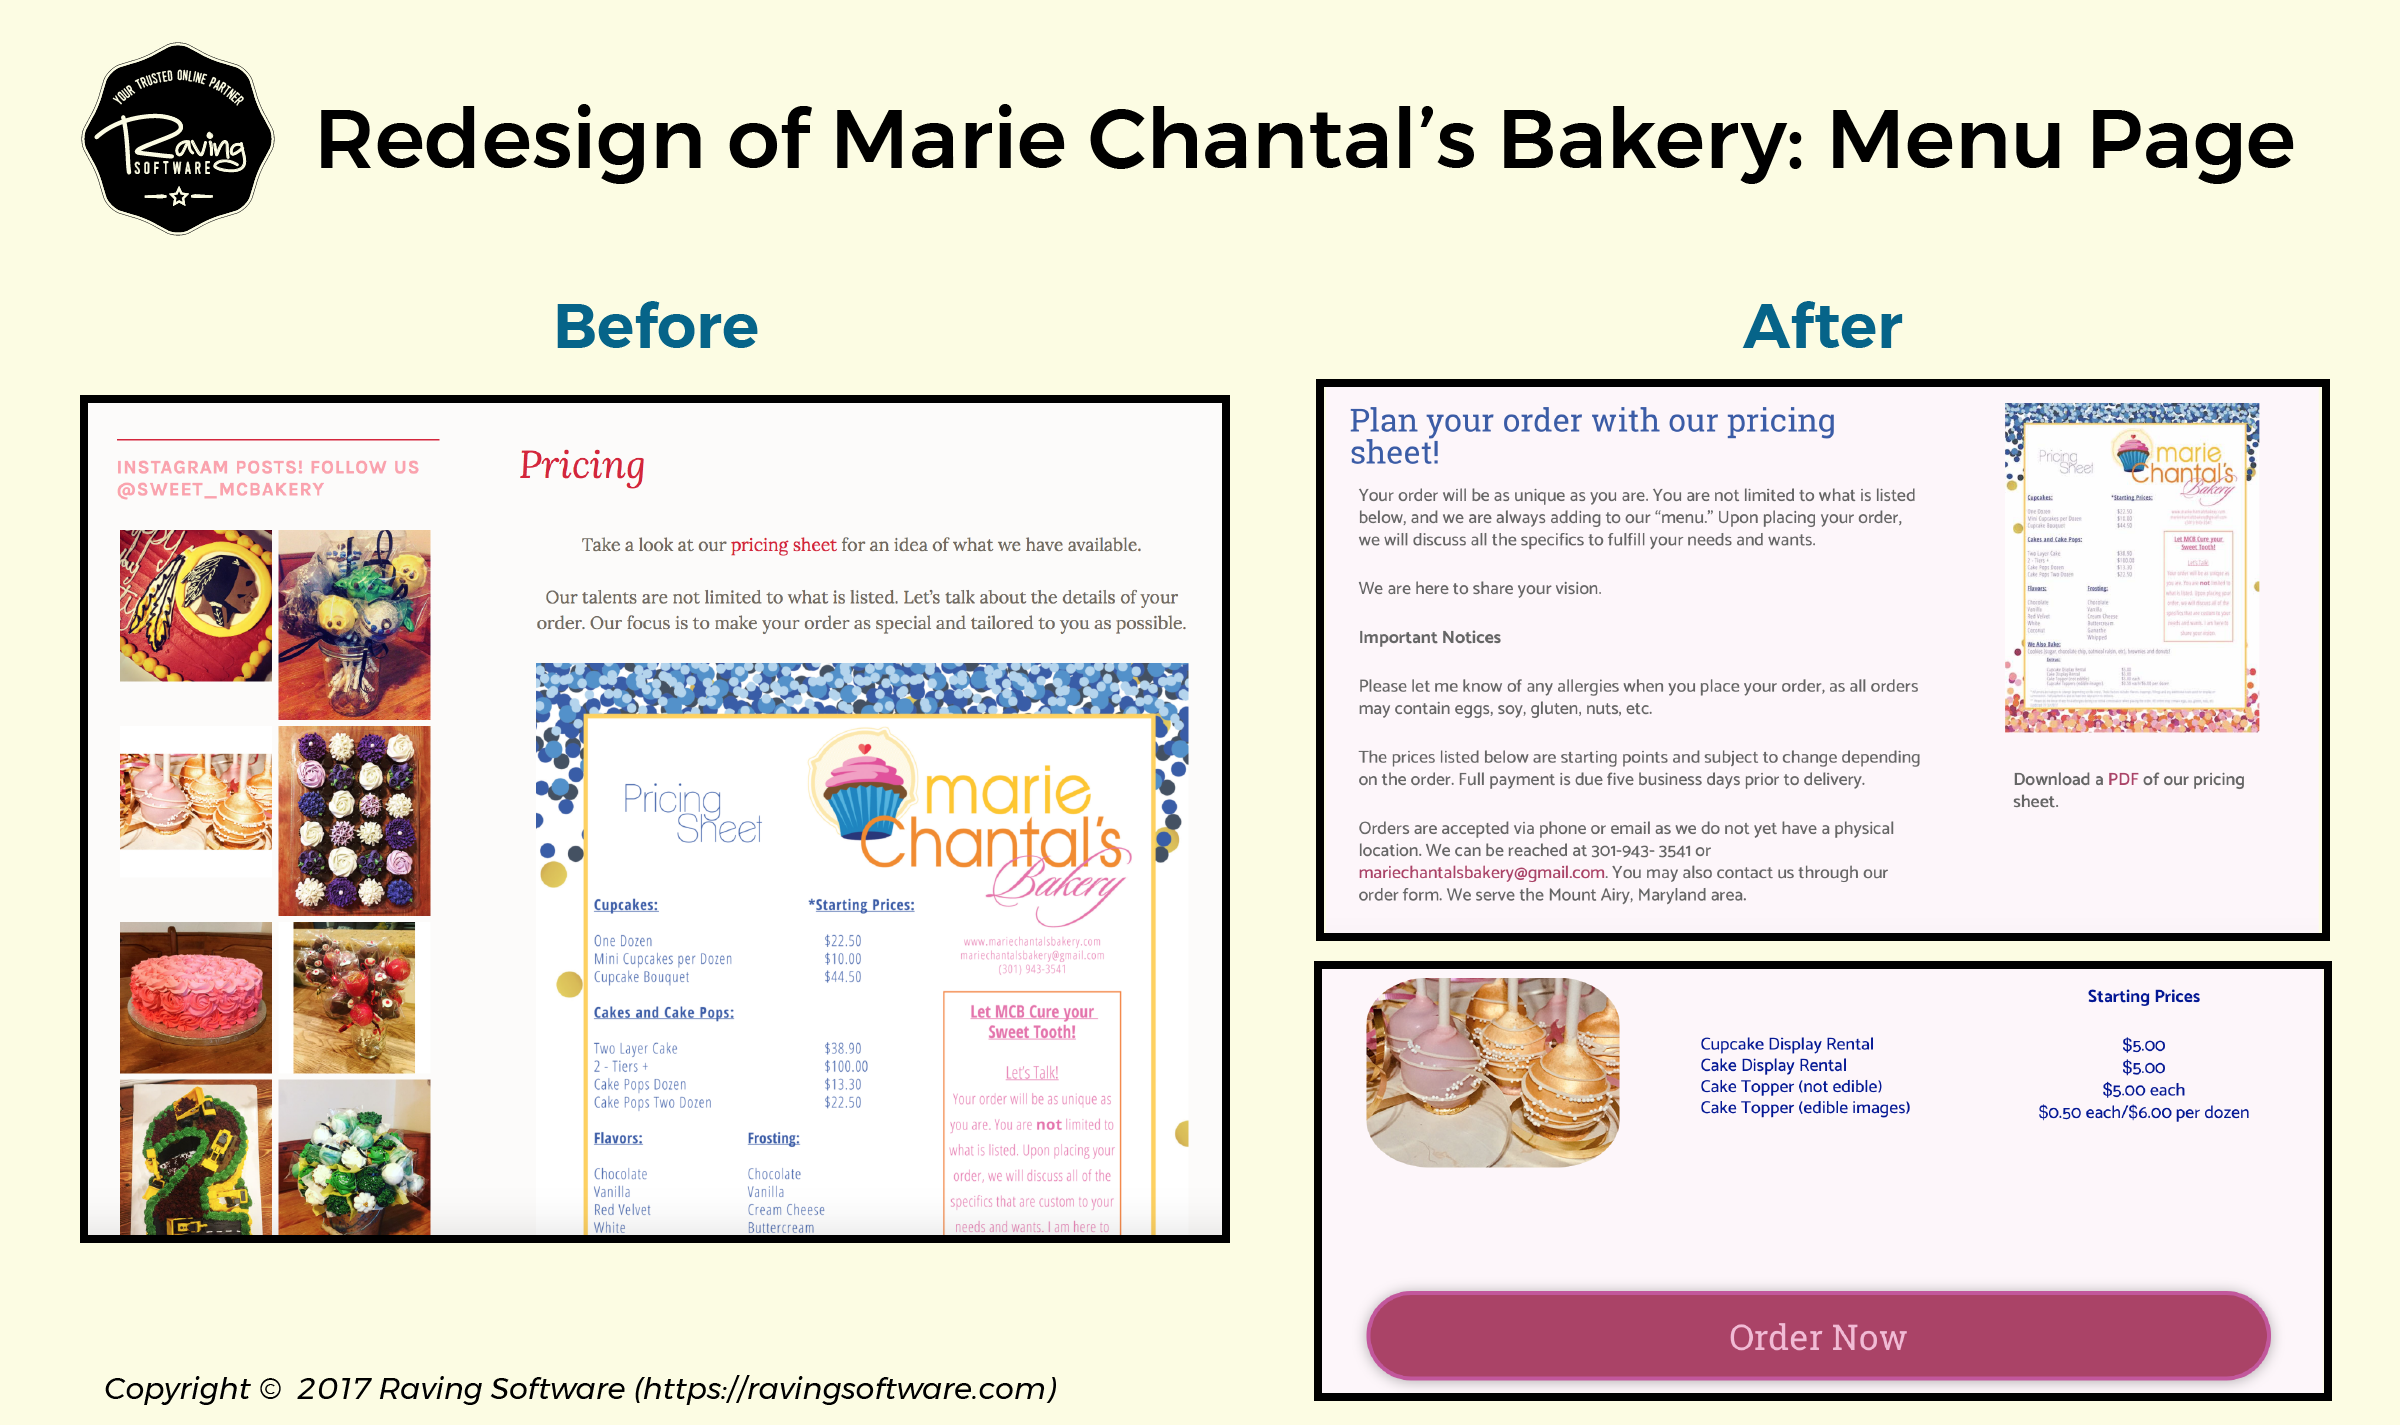 Before and After on Marie Chantal's Bakery website redesign for the pricing page.